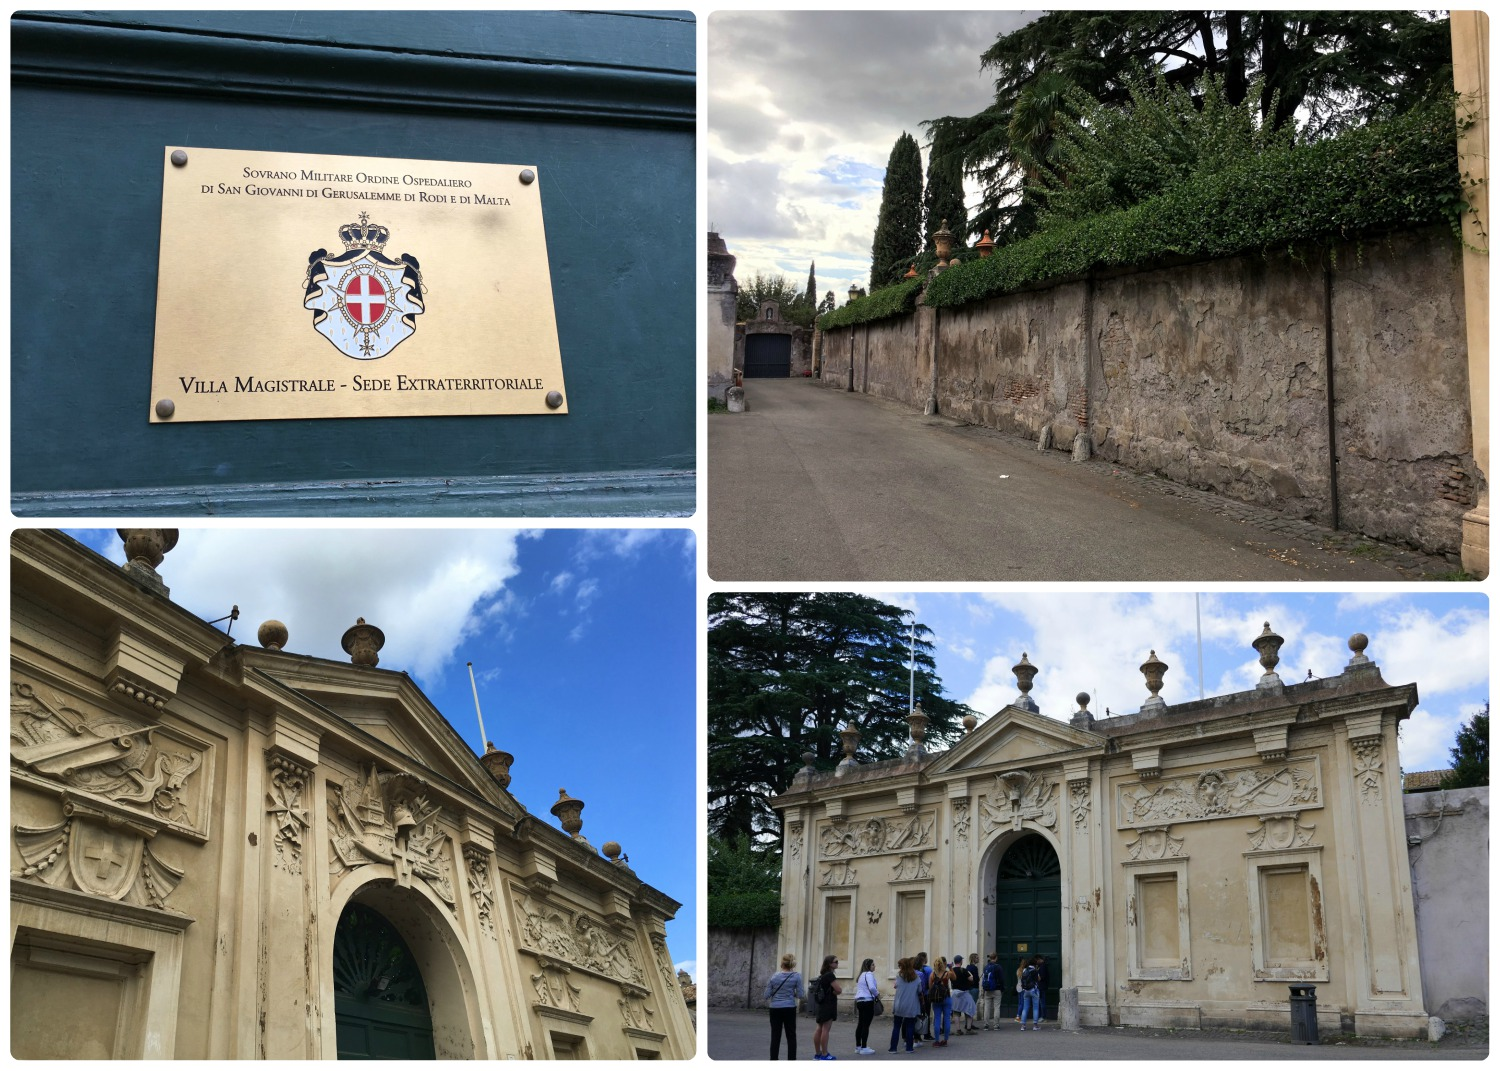 Aventine Hill in Rome,Italy and the doorway that leads to what was once property of the Knights Templar and then of the Priory of the Knights of Malta.